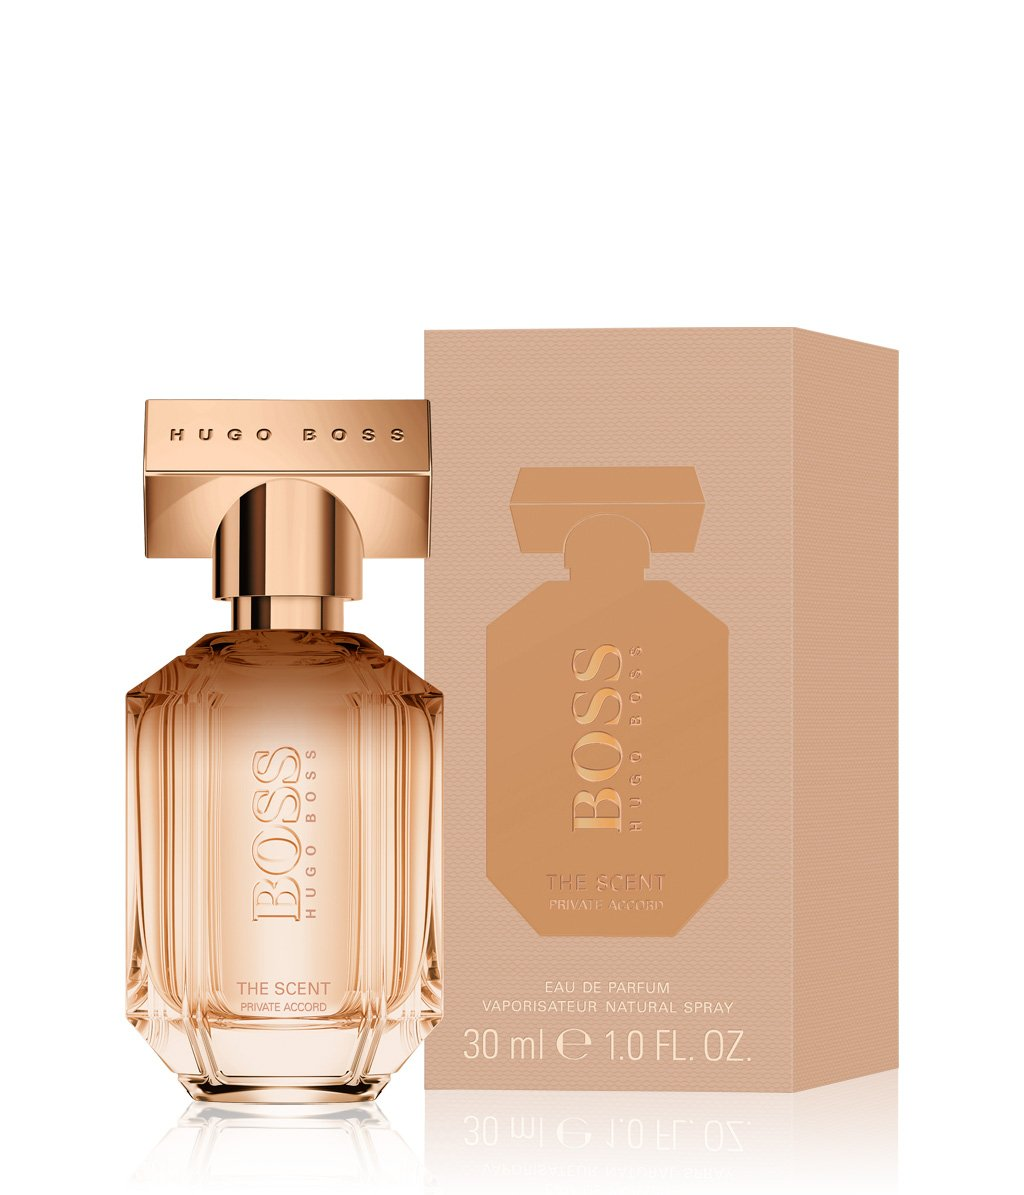 hugo boss boss the scent private accord for her edp. Black Bedroom Furniture Sets. Home Design Ideas